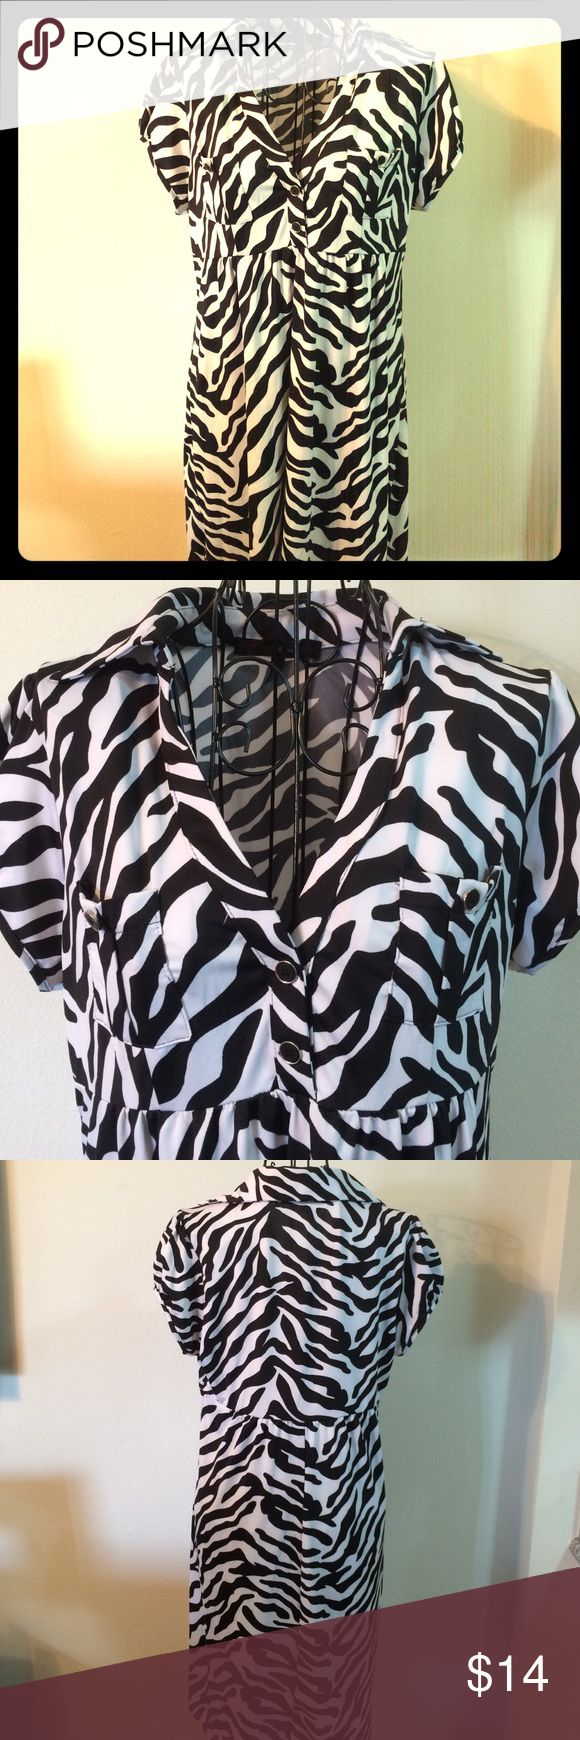 Fun Zebra Print Dress This great zebra print dress has a great neckline, great buttons and is a flattering cut. Polyester with a little spandex so it's shiny, a little stretchy and flowing. New but no tag. Heart & Soul Dresses